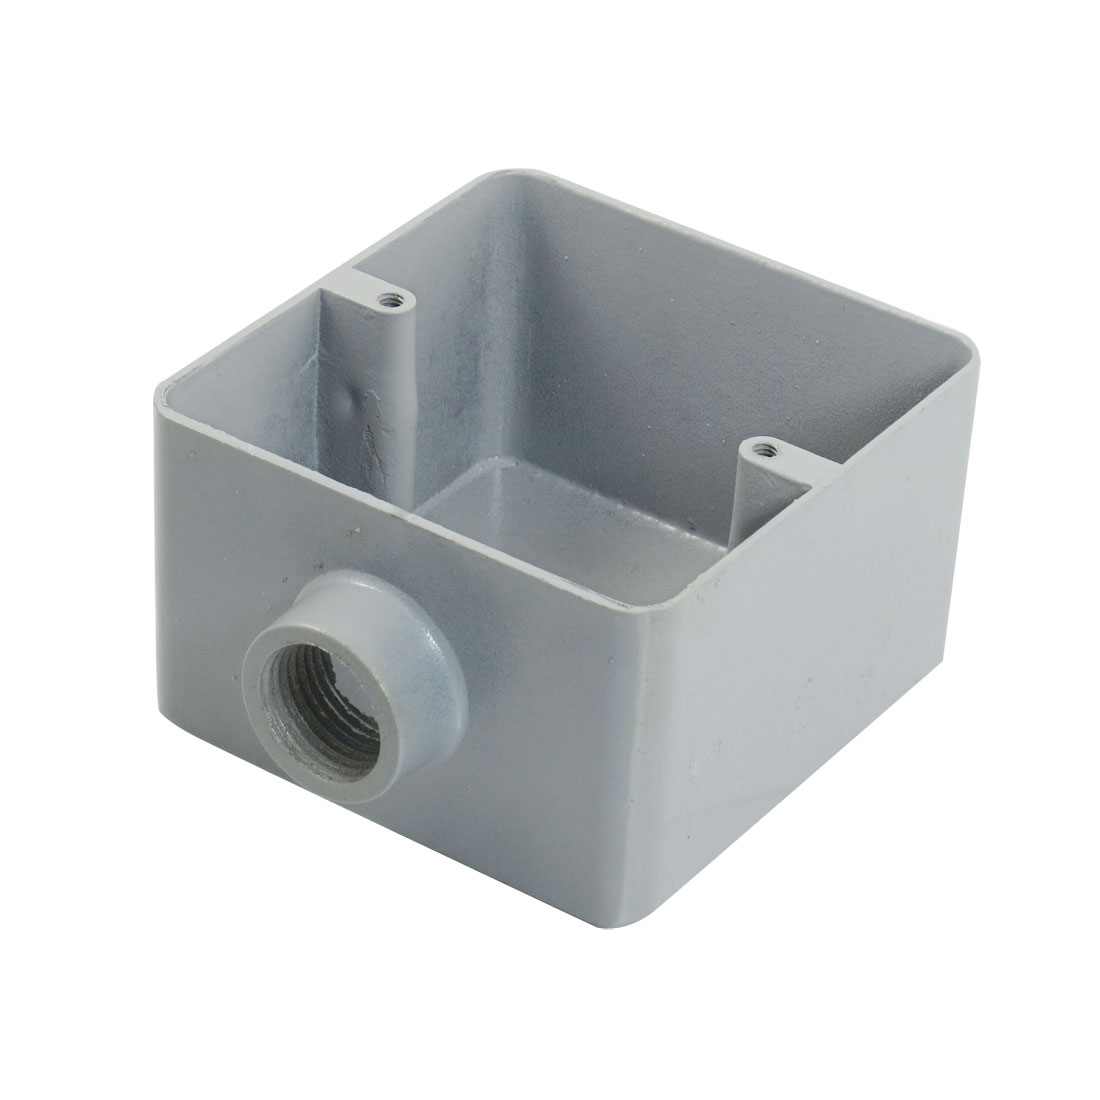 "G1/2"" Home Metal Single Hole Circuit Wire Junction Box"